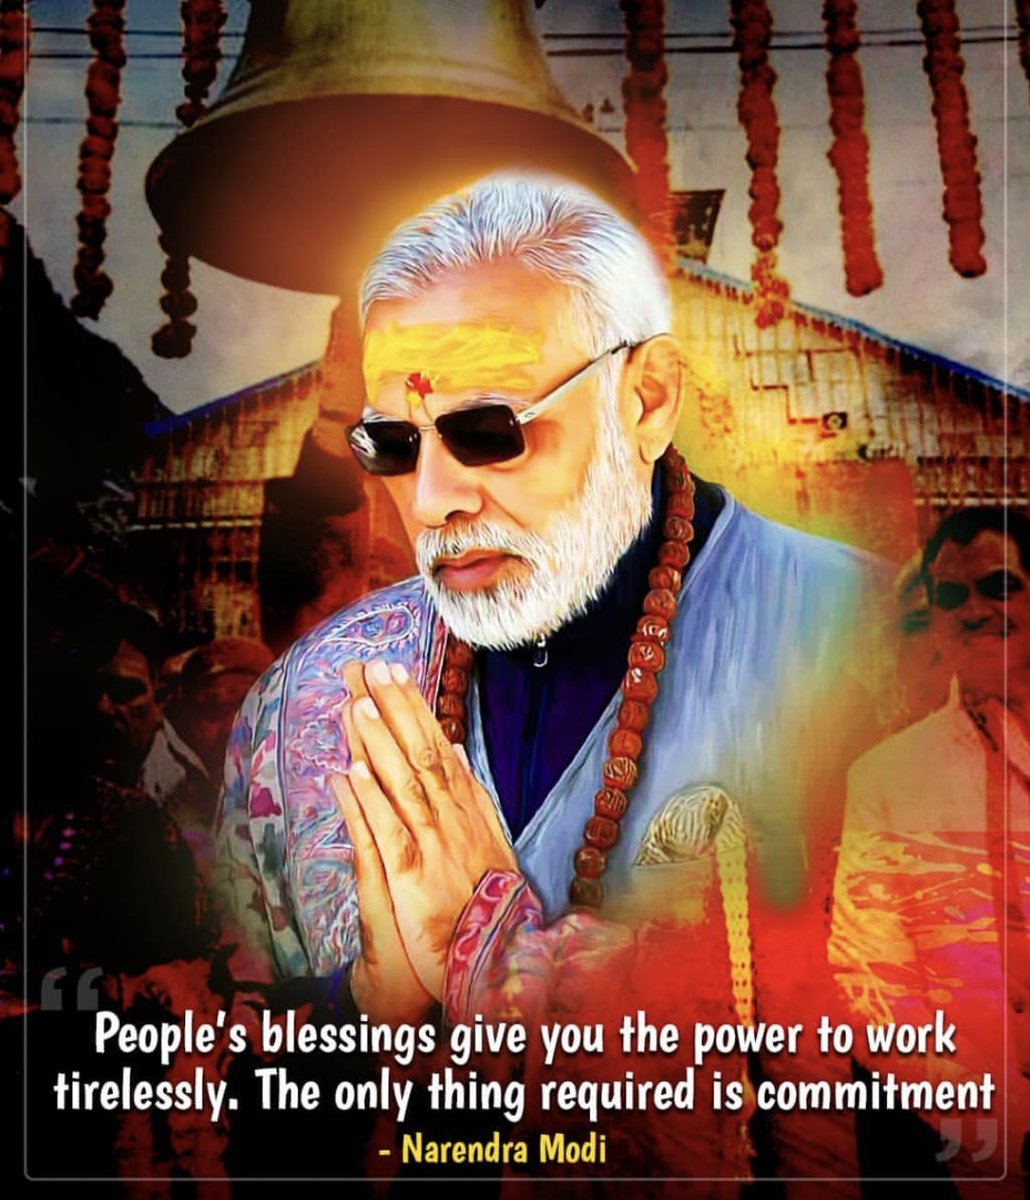 Narendra Modi is not only a name of a person, he is an inspiration,a ray of hope for living with proud for crores of people all over the world. #narendramodi #myfirstvoteformodi #voteformodi pic.twitter.com/ubASIOZC0N